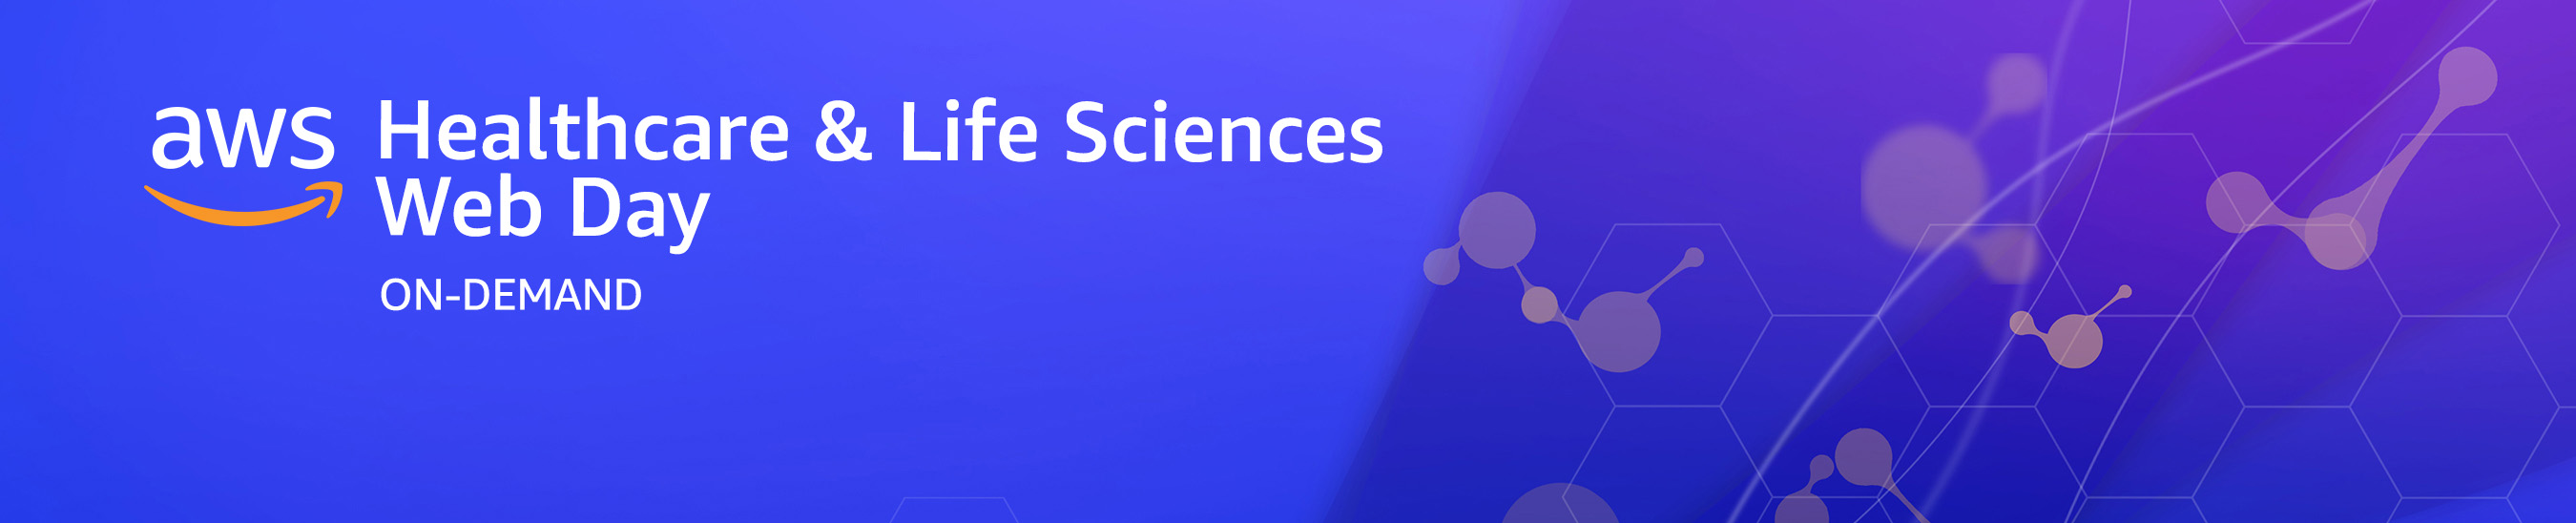 Healthcare and Life Sciences Web Day - on demand